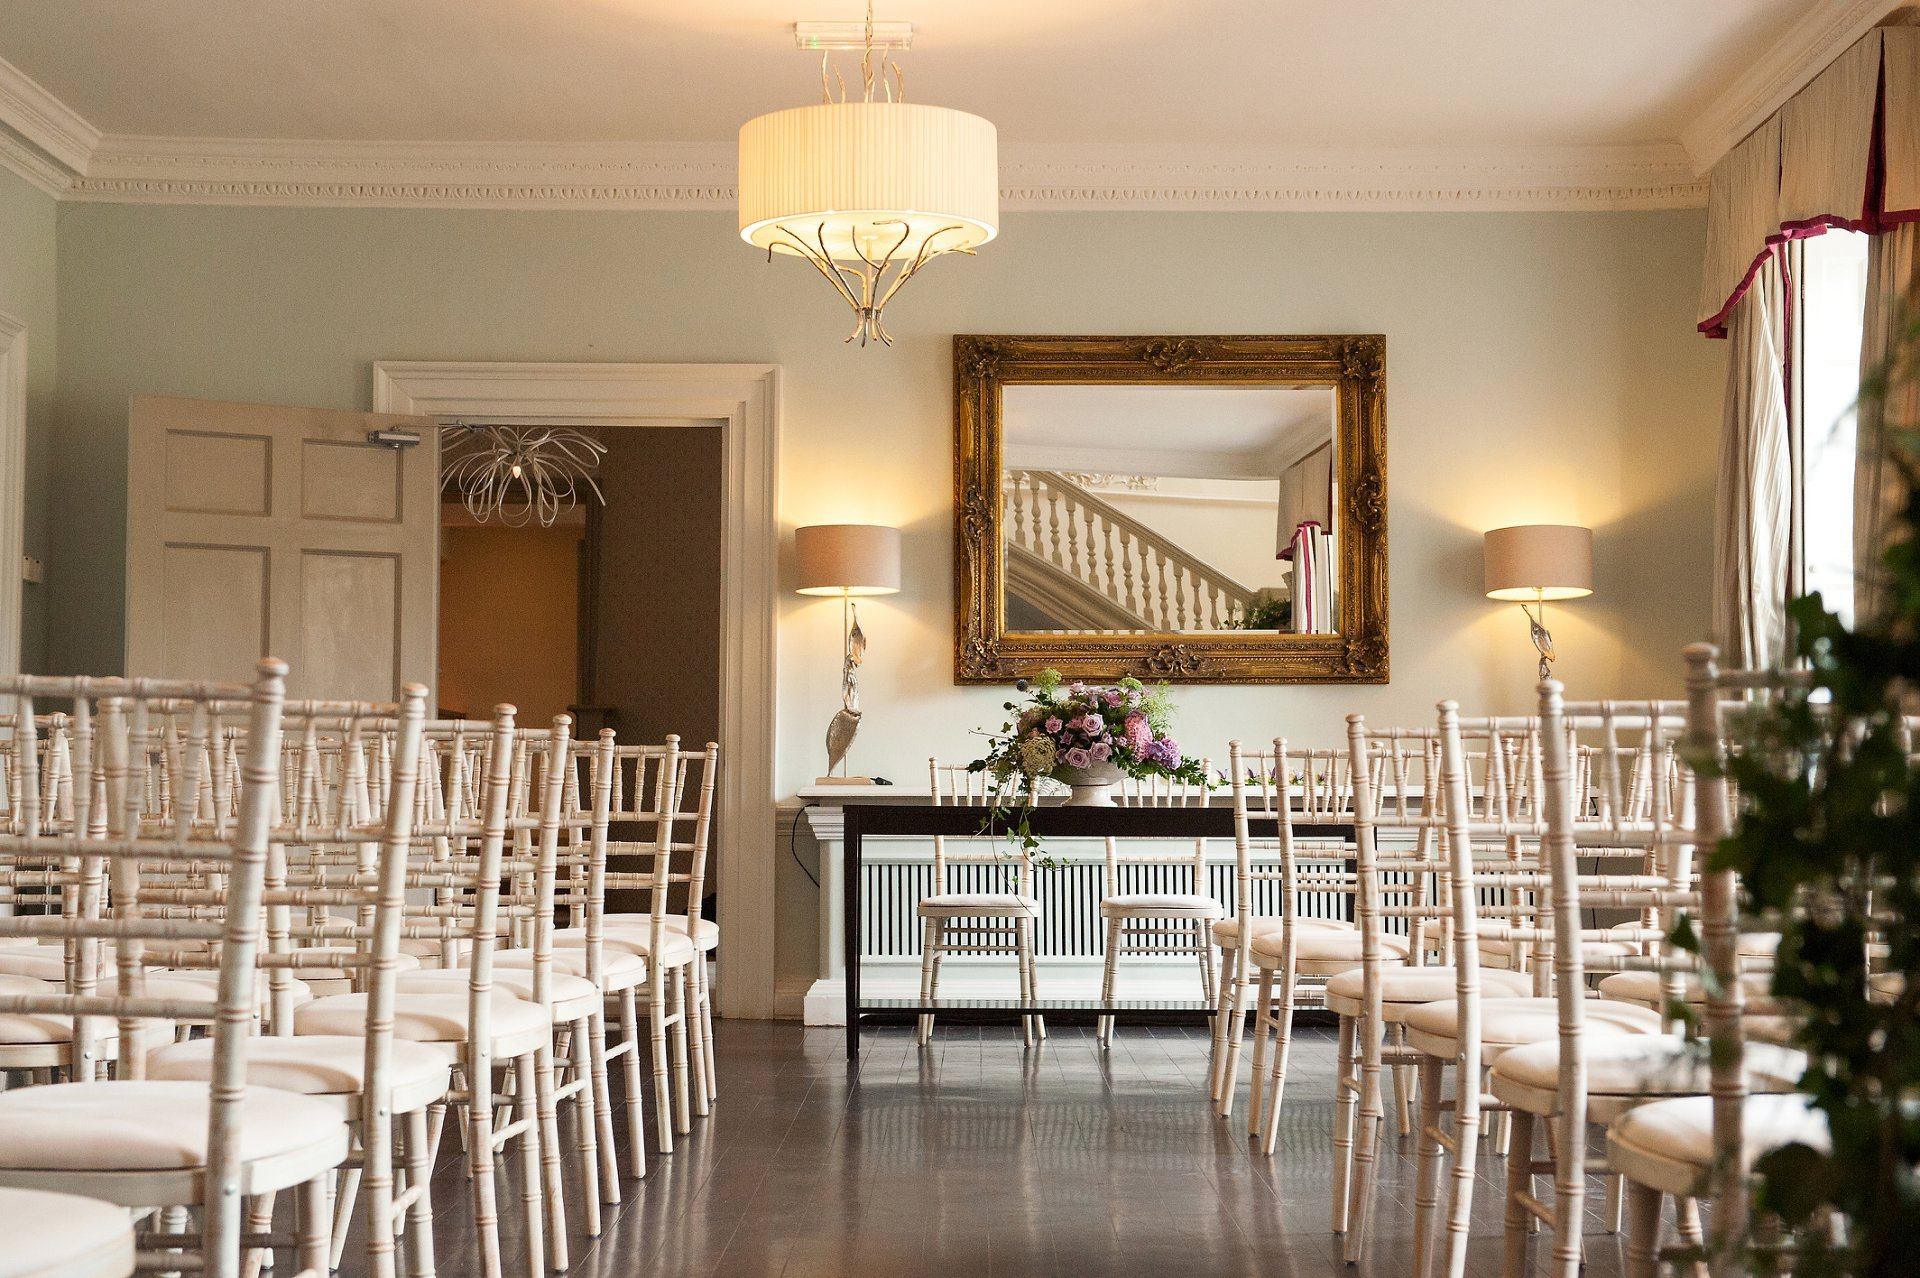 Willow Room at Morden Hall set up for a civil wedding ceremony